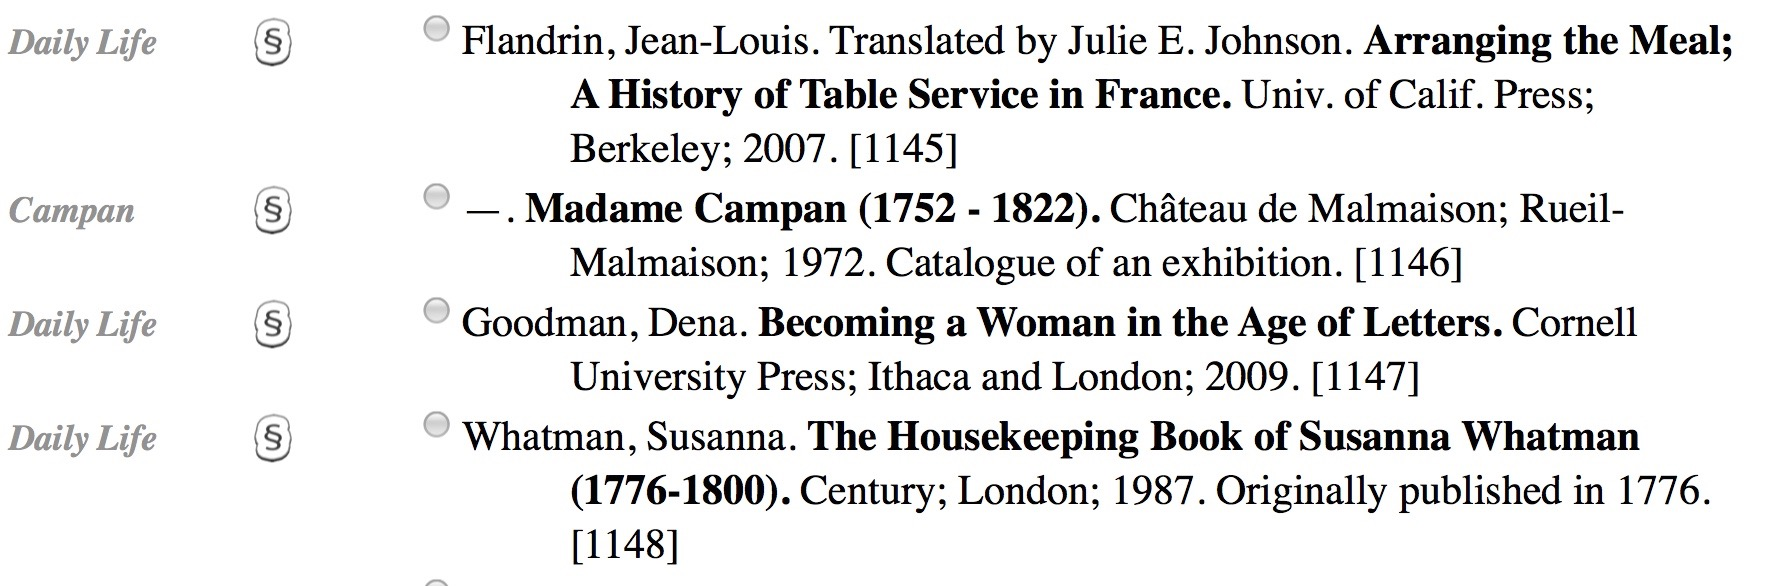 Difference between in text citation and bibliography?